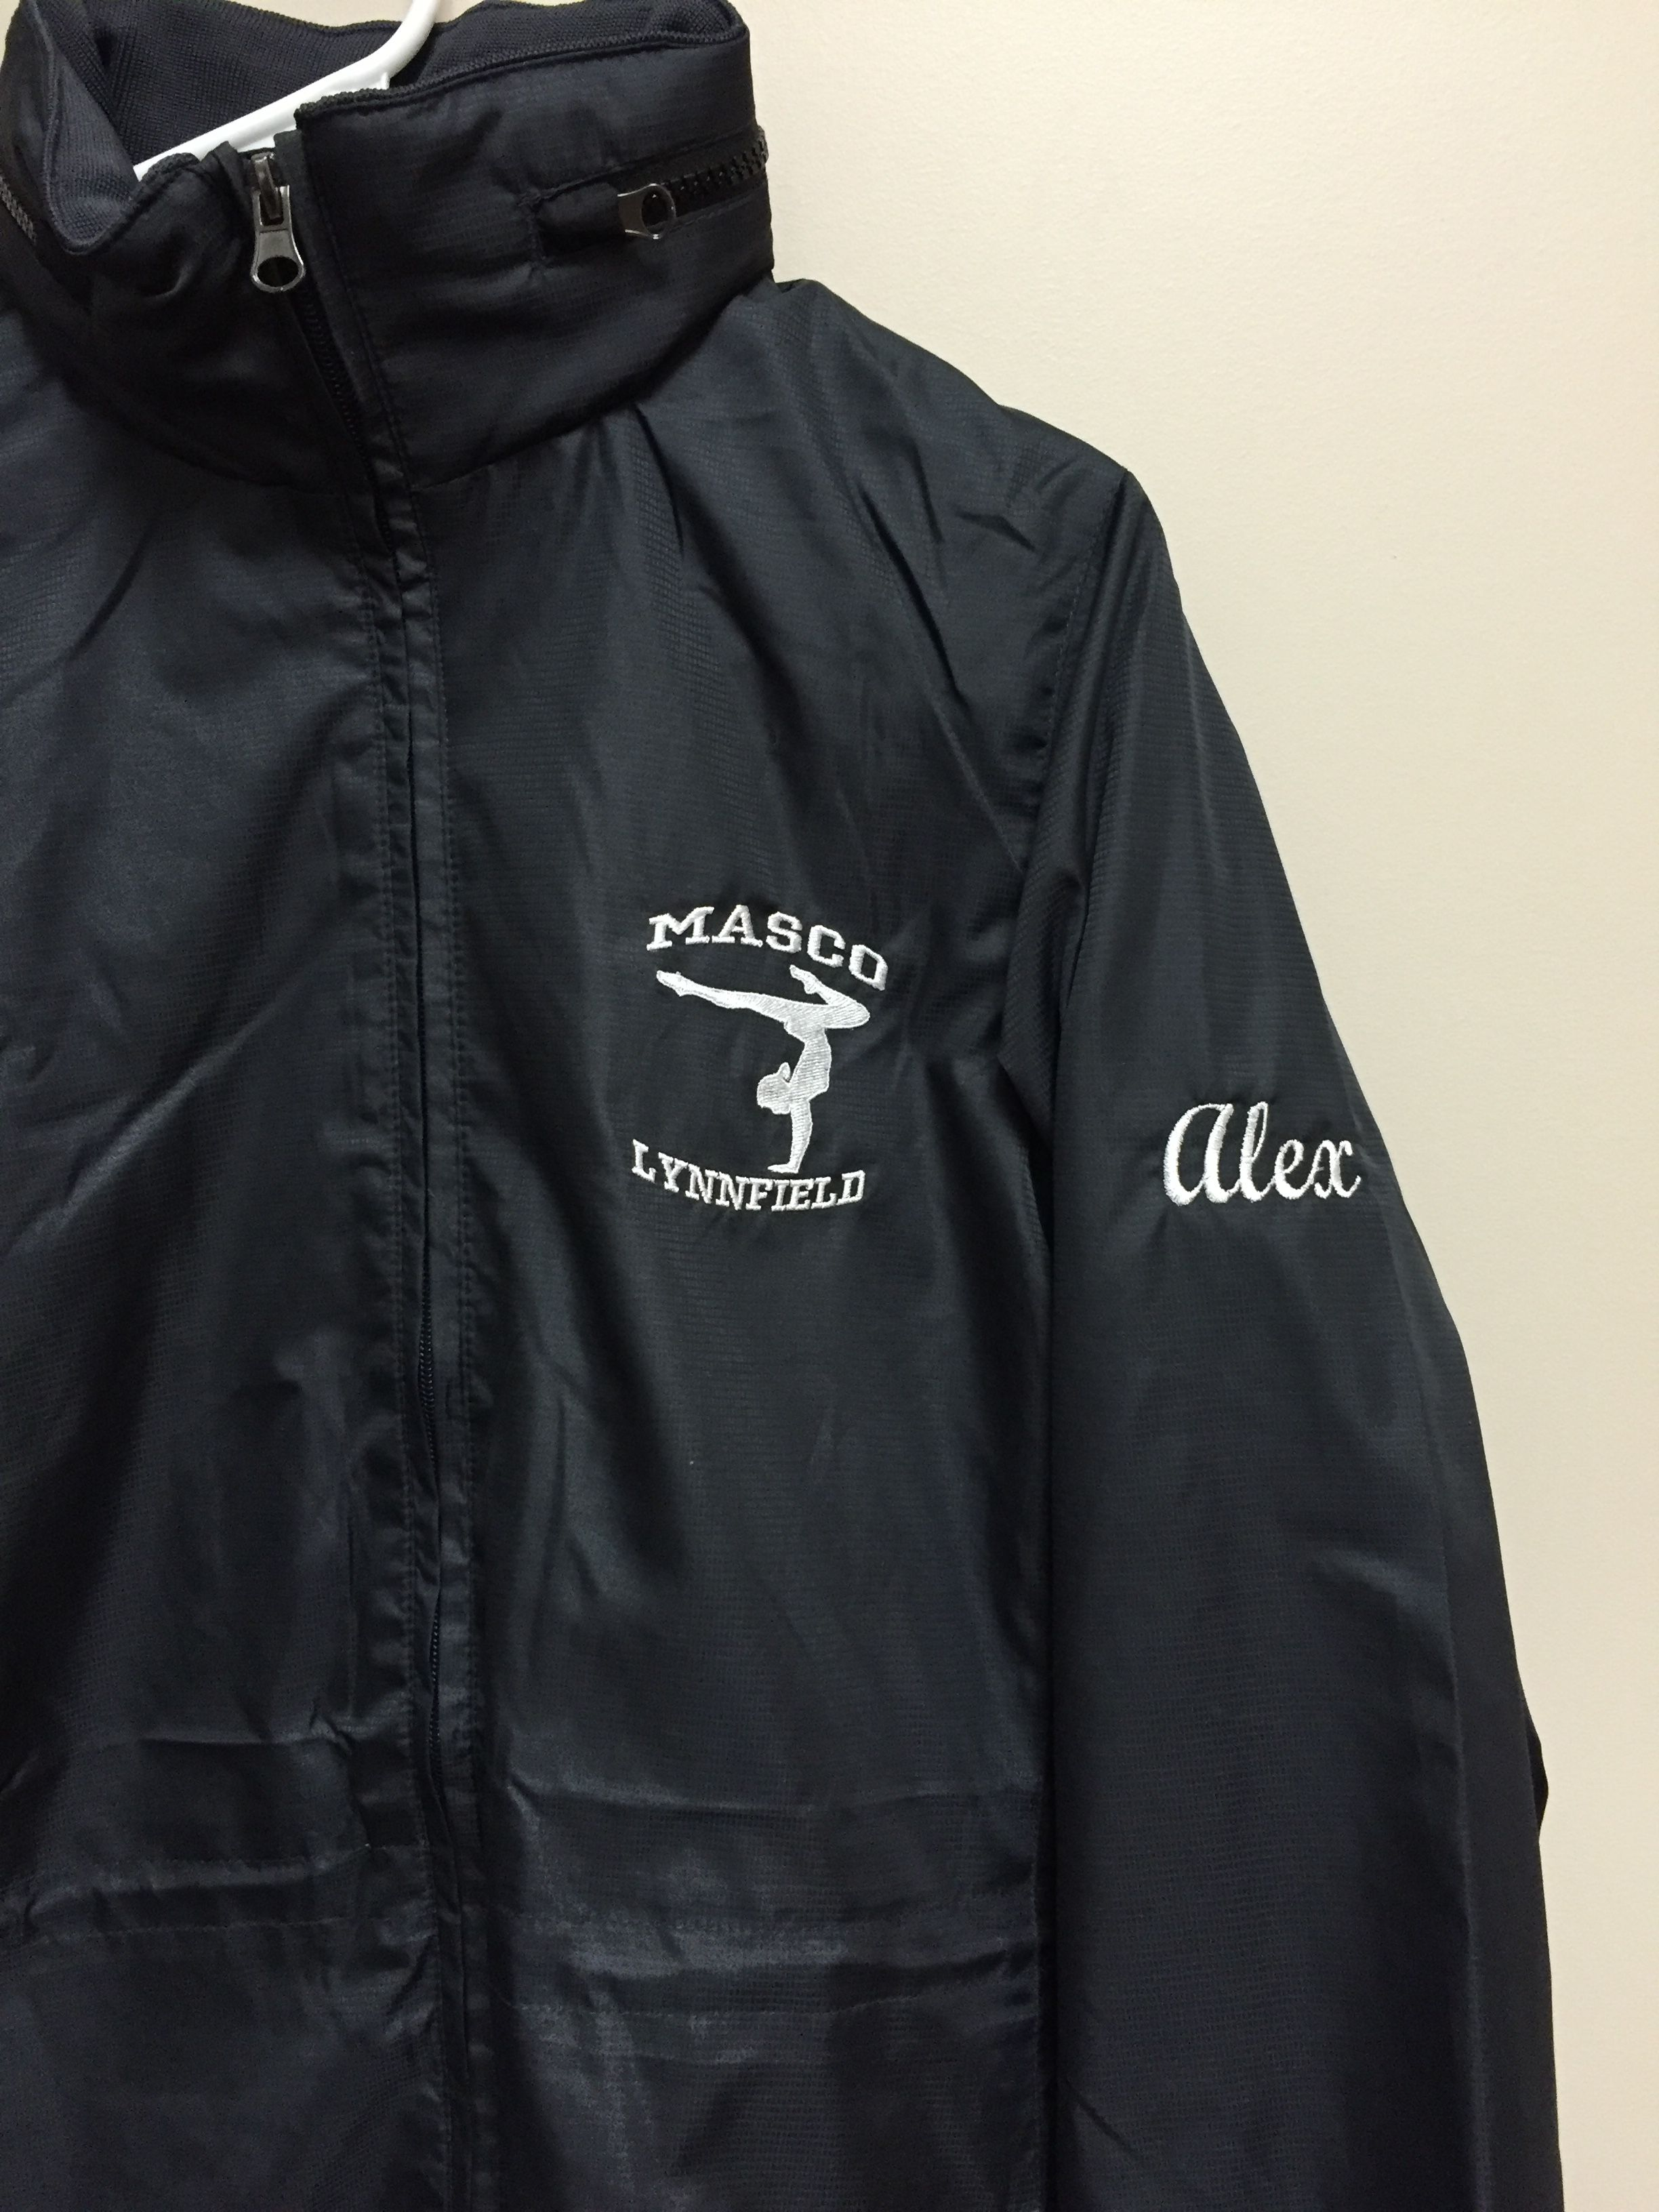 embroidered logo and name on sleeve lynnfield sports pinterest